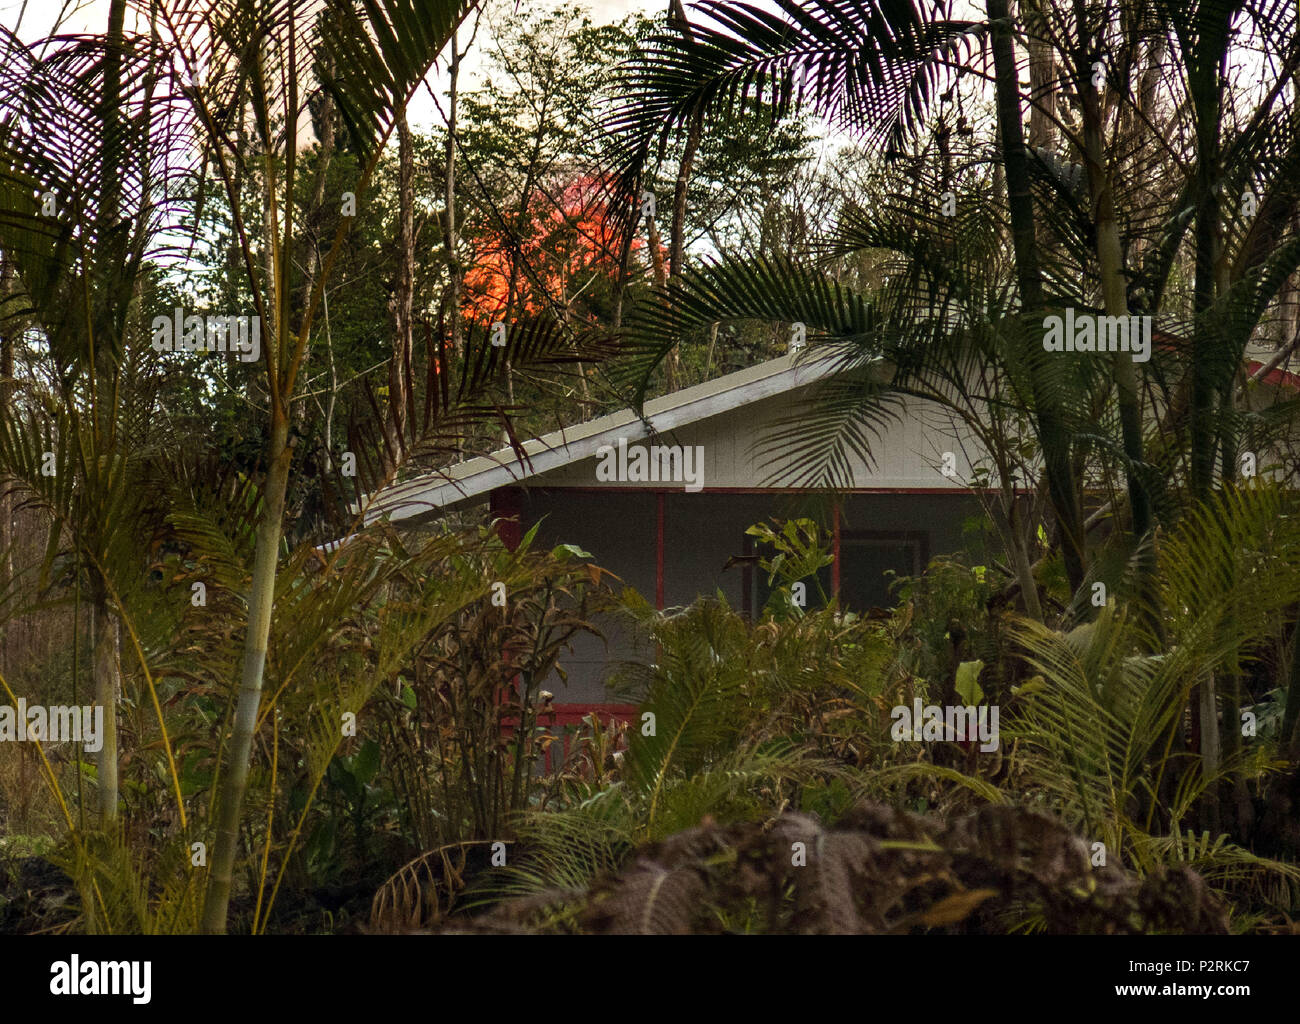 Pahoa, Hawaii, USA. 9th July, 2018. Fissure 8 erupts in the distance over a home in the Leilani Estates Subdivision as the Kilauea Volcano east rift zone eruption continues Sunday, June 10, 2018, in Pahoa, Hawaii. Photo by LE Baskow/LeftEyeImages Credit: L.E. Baskow/ZUMA Wire/Alamy Live News - Stock Image